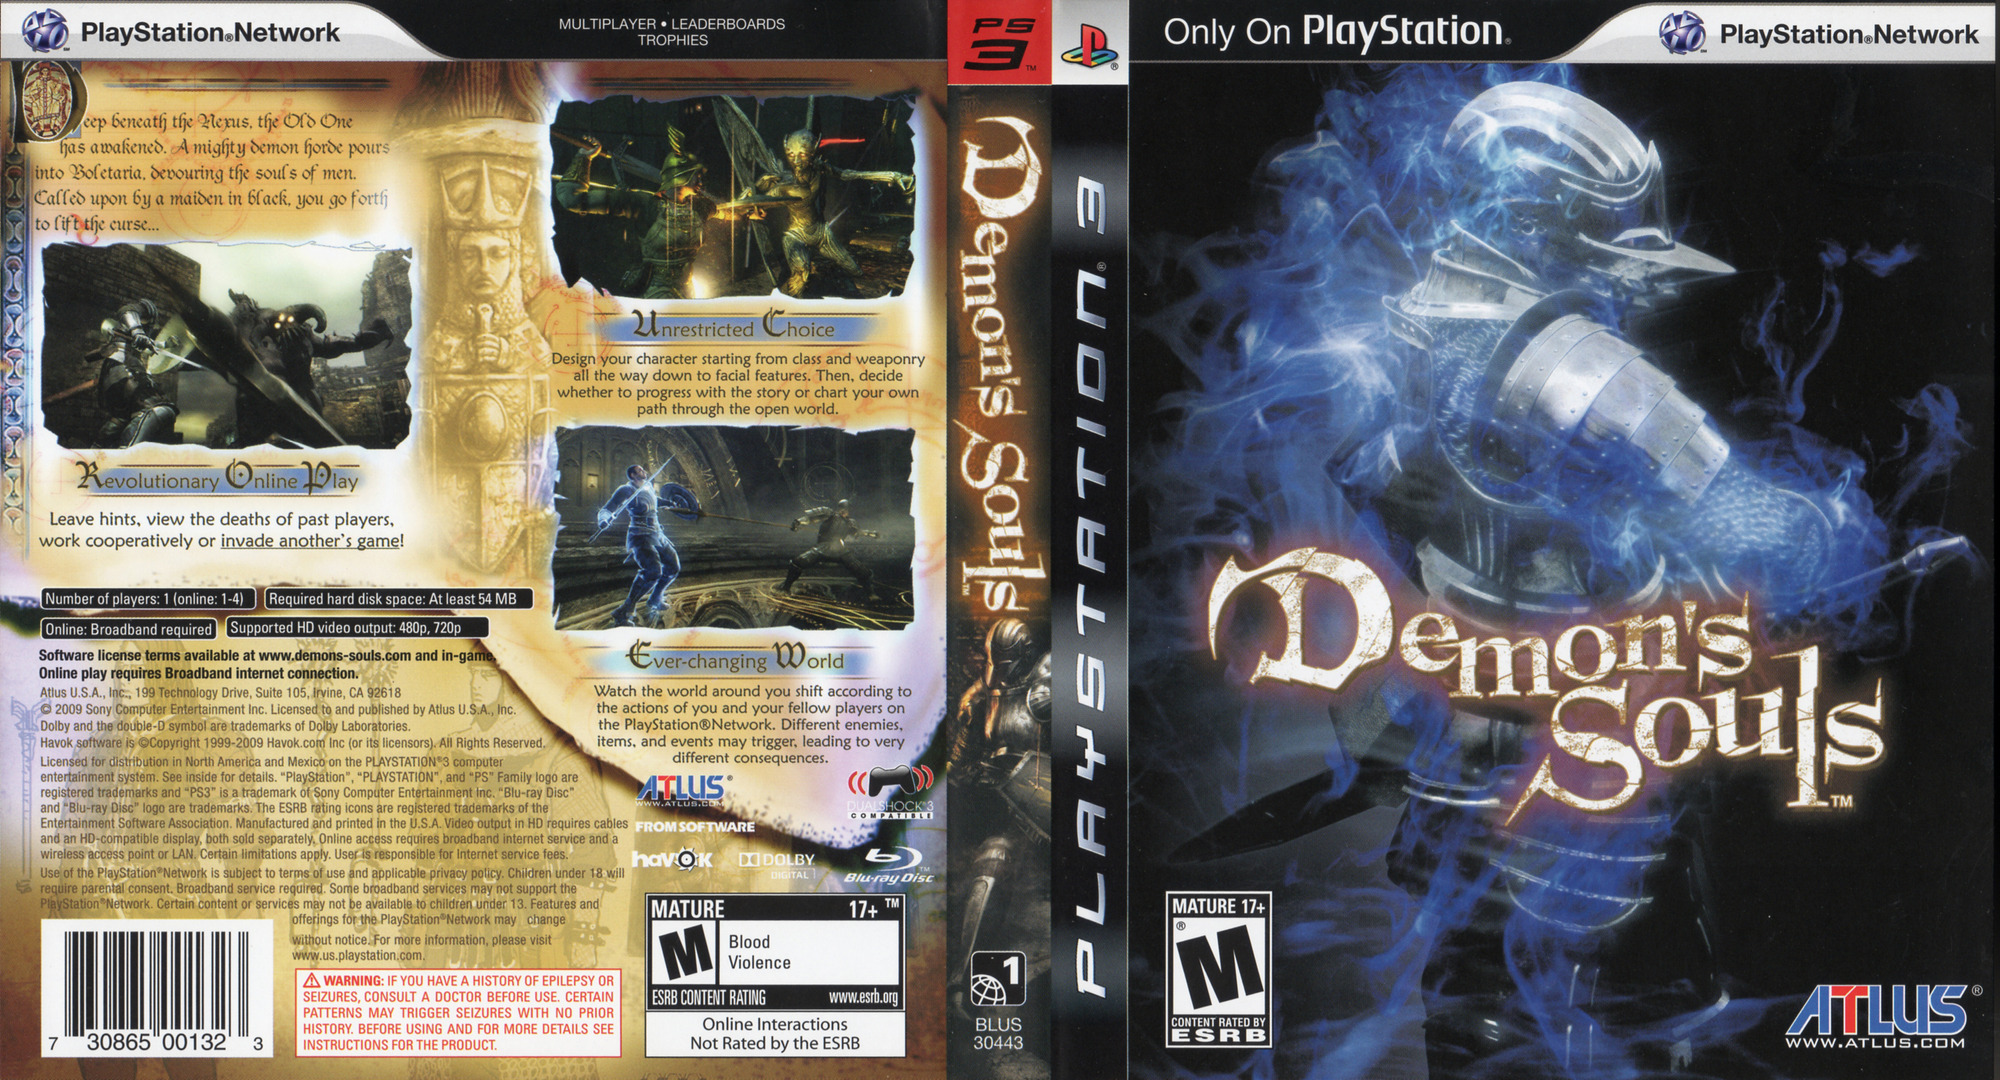 demons souls ps3 pkg download